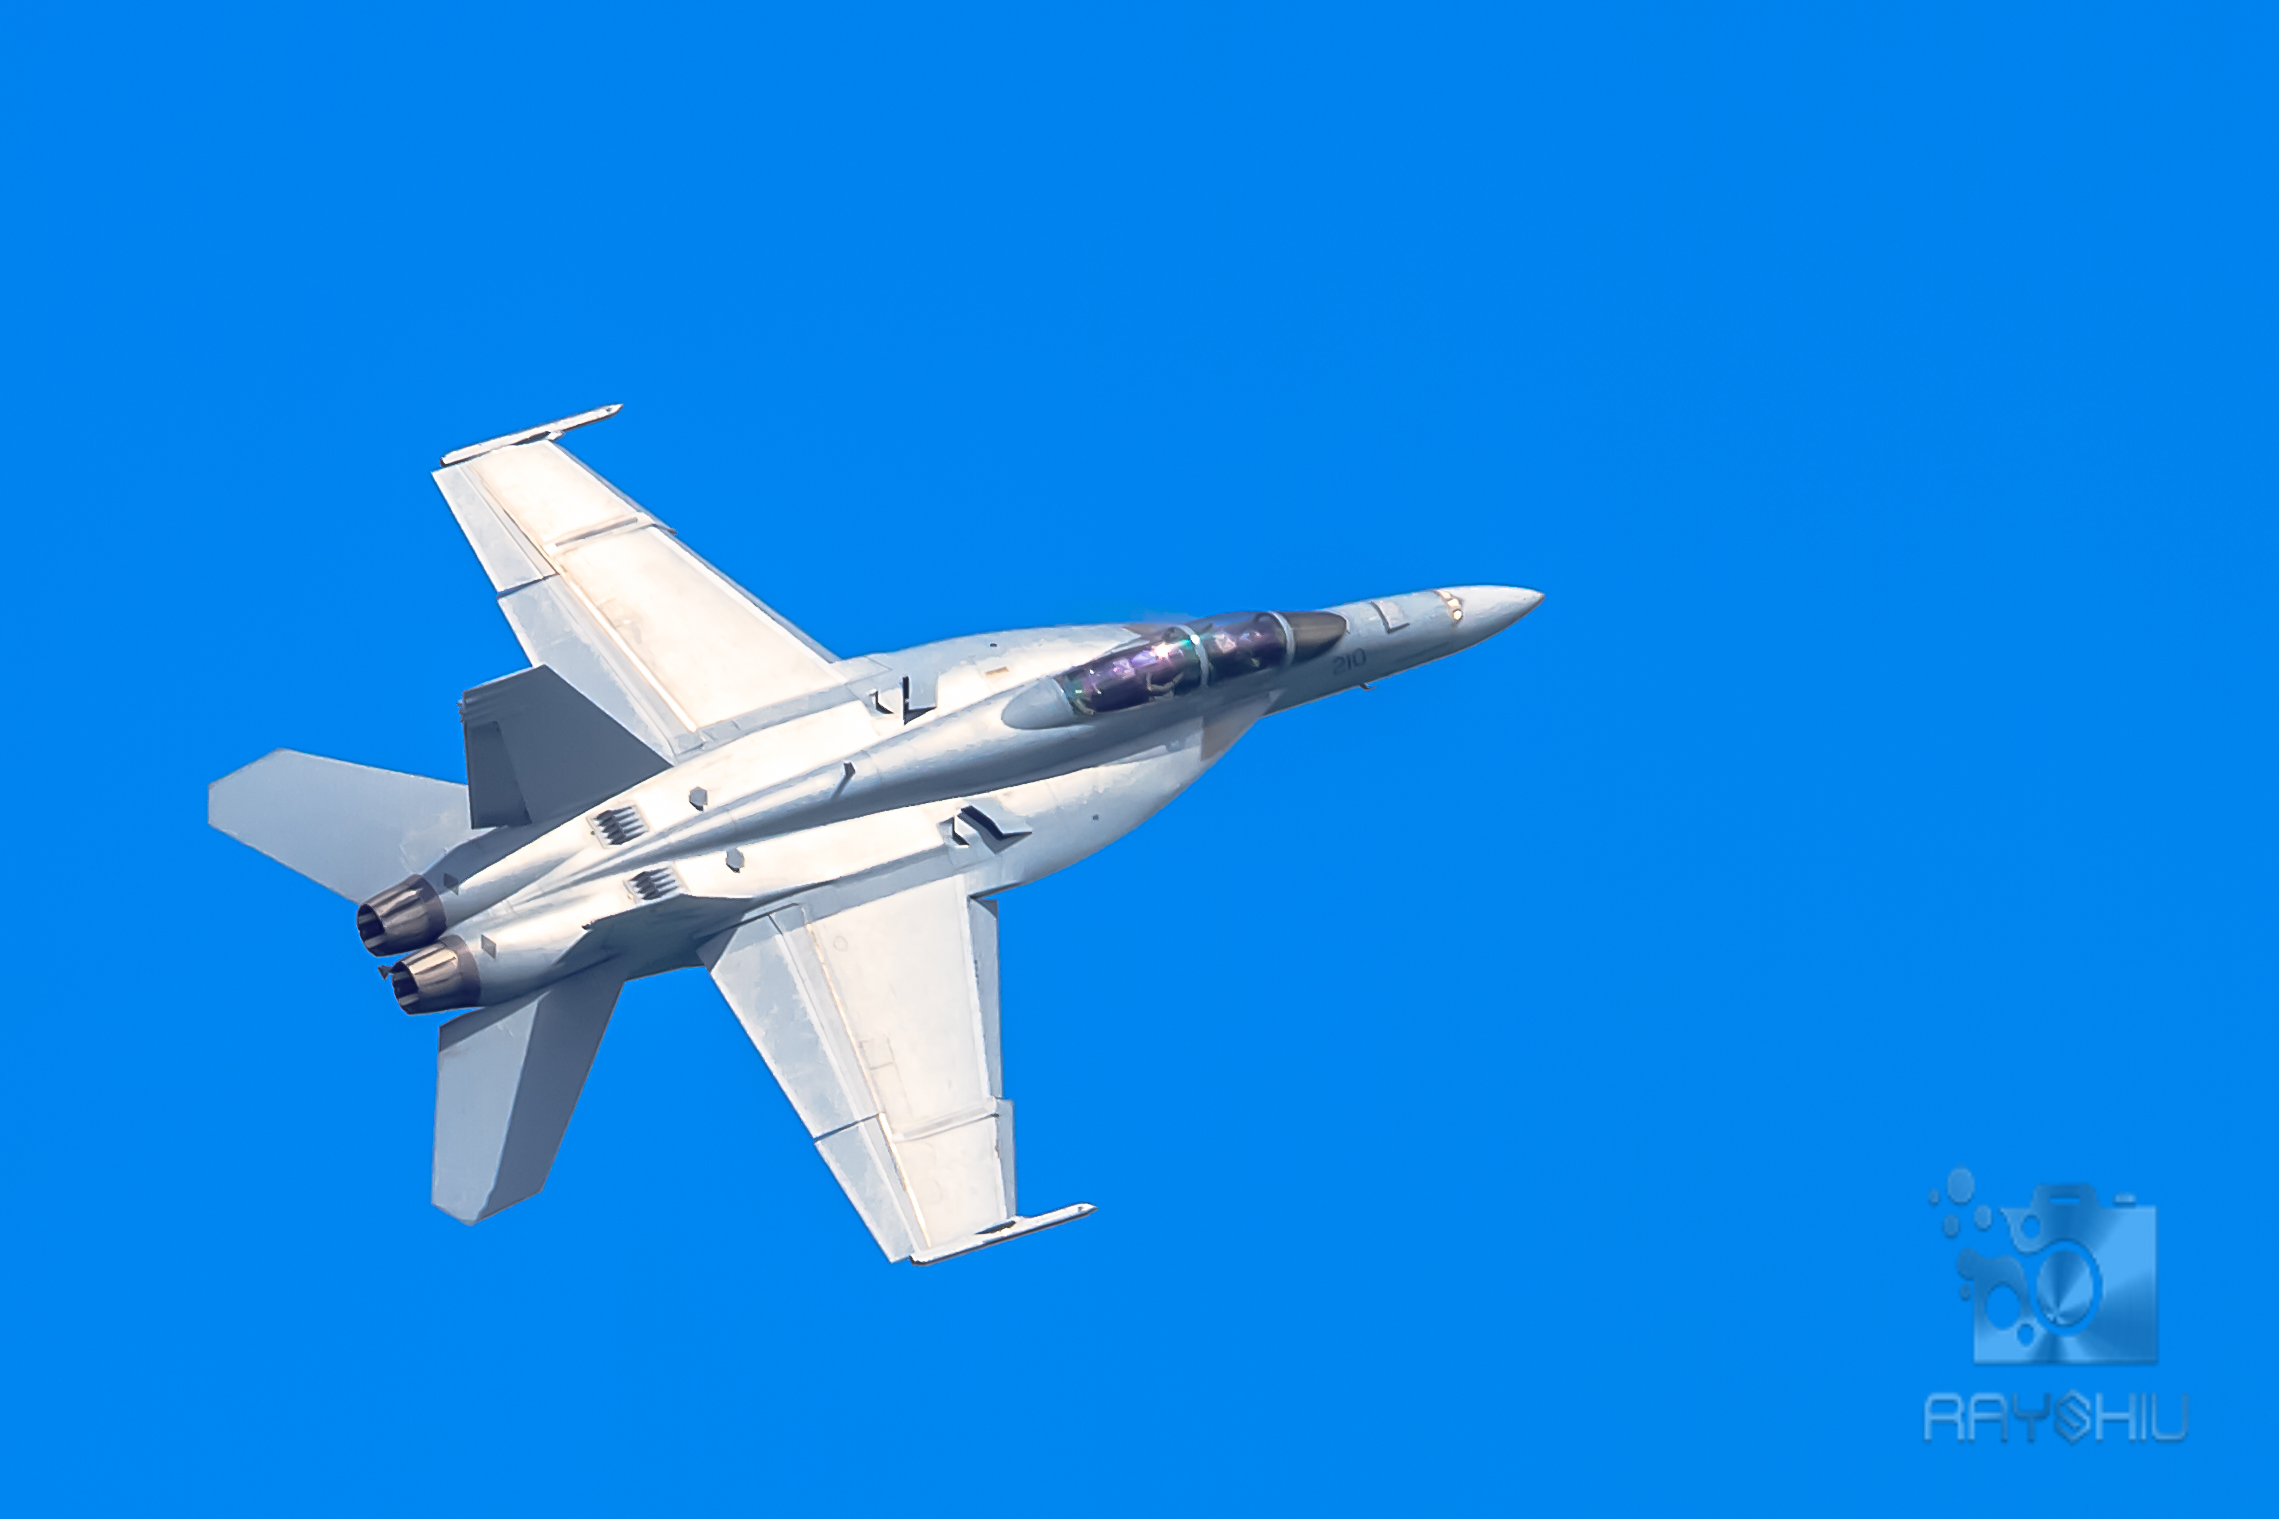 F-18 motionless in the sky